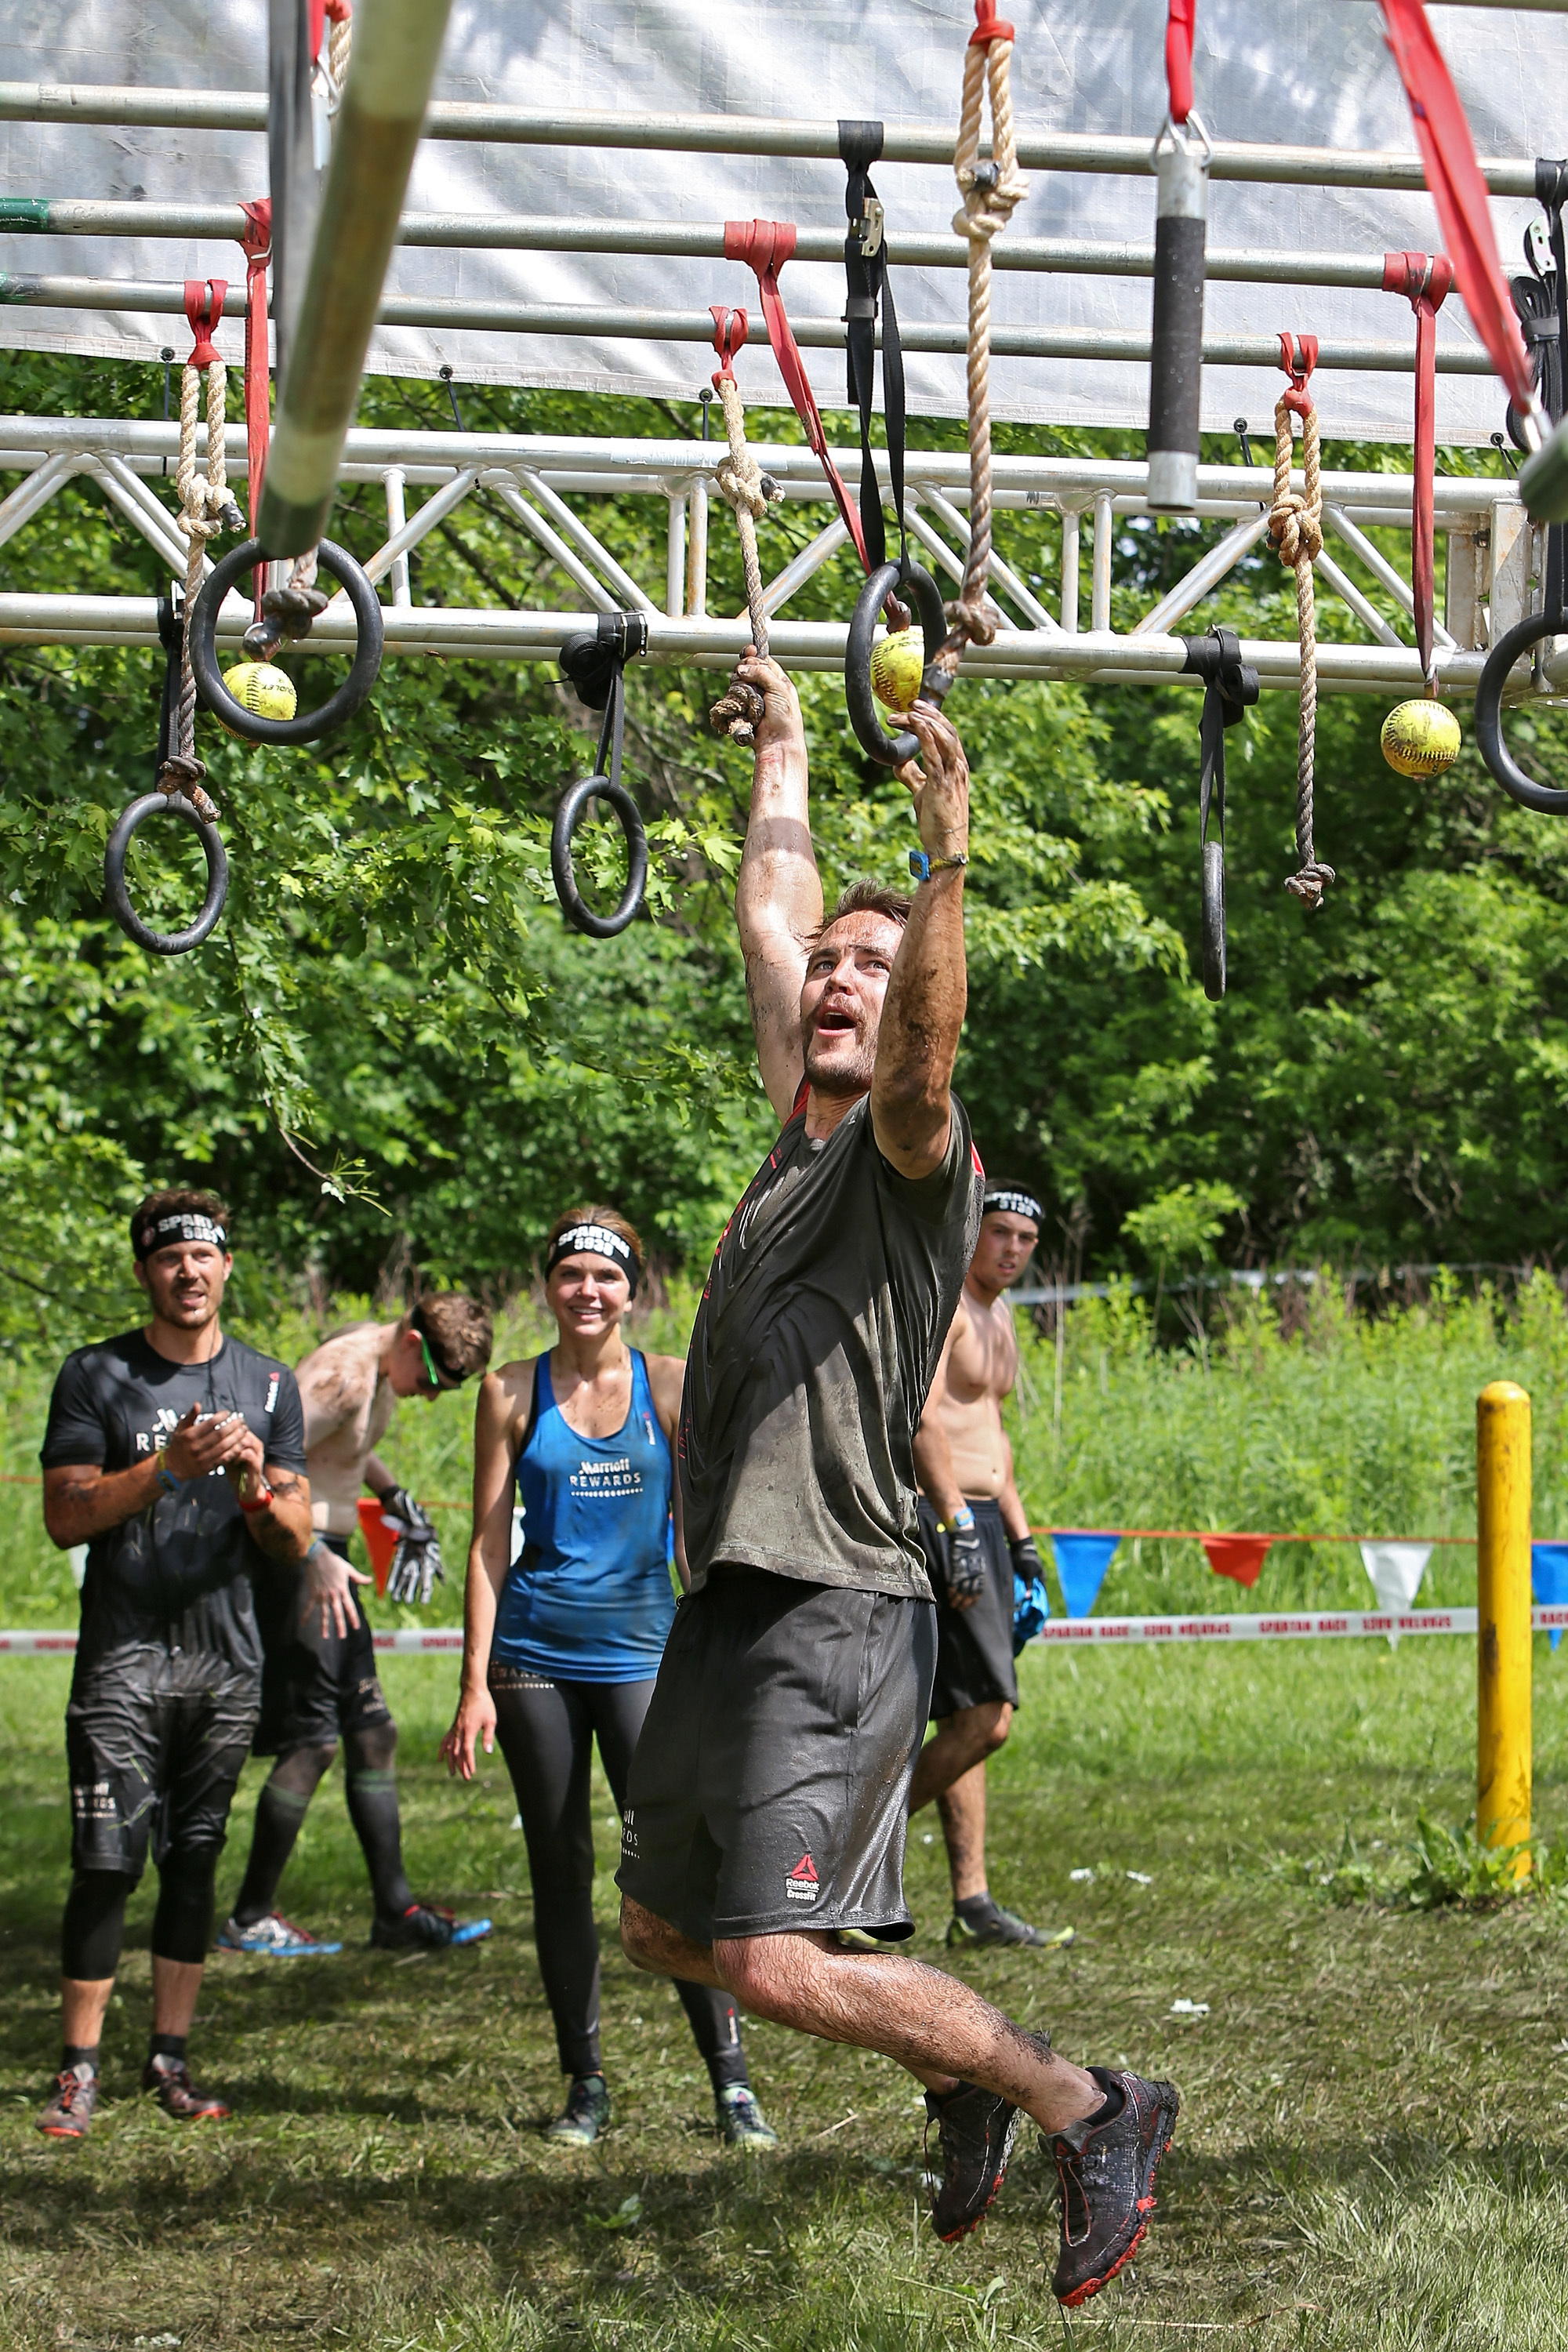 Taylor Kitsch on Marriott Rewards' special training for the Spartan Race: